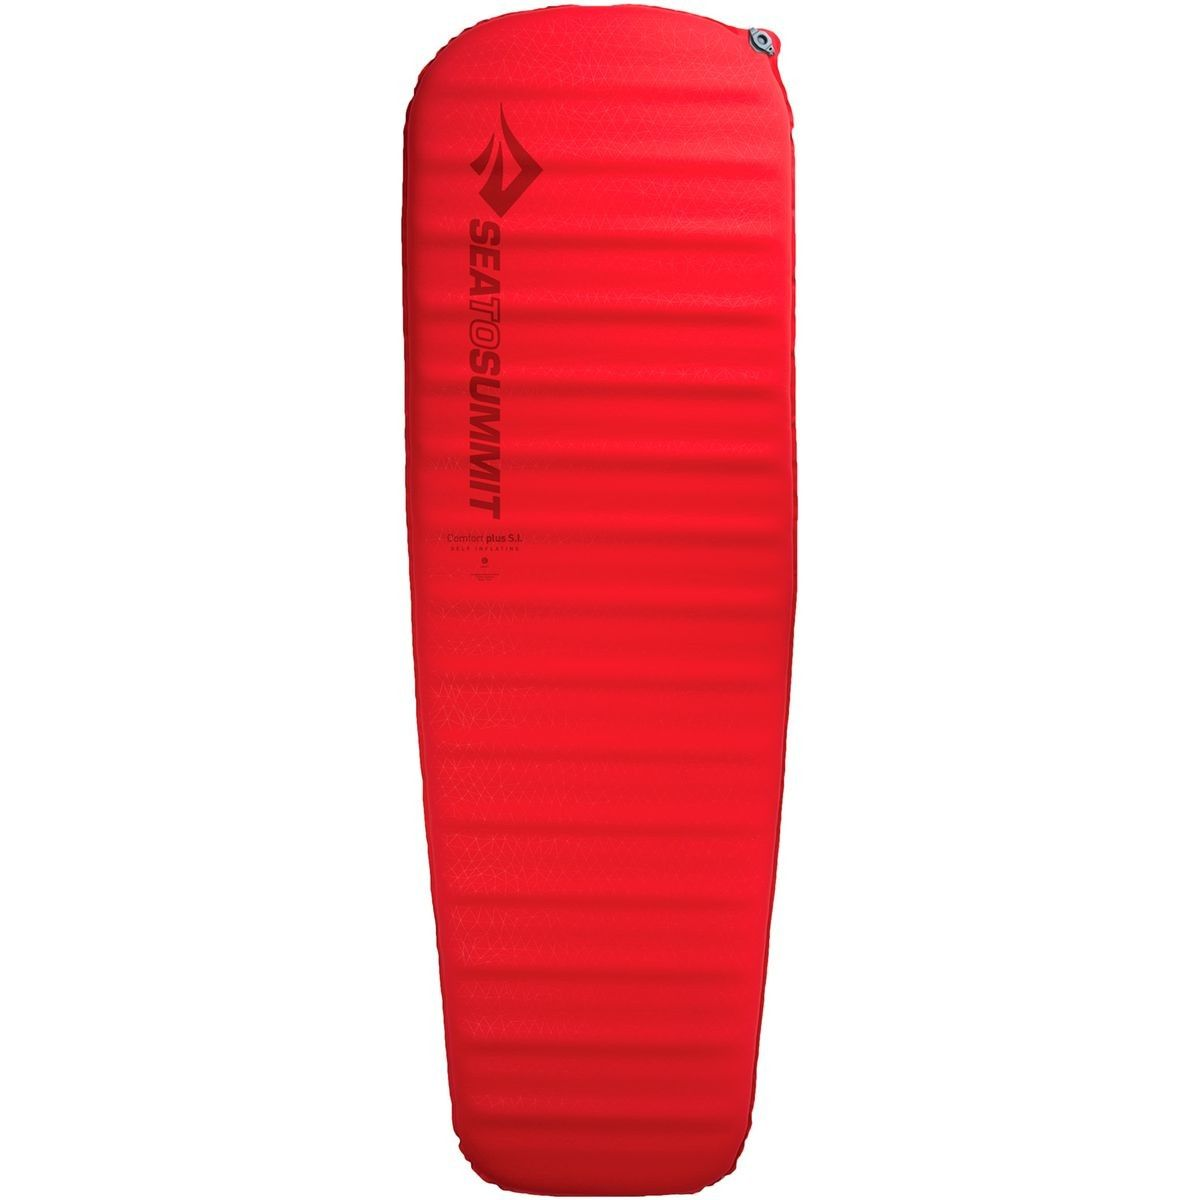 Comfort Plus S I Matelas Large Rouge Taille Taille Unique Matelas Matelas Gonflable Camping Matelas Gonflable